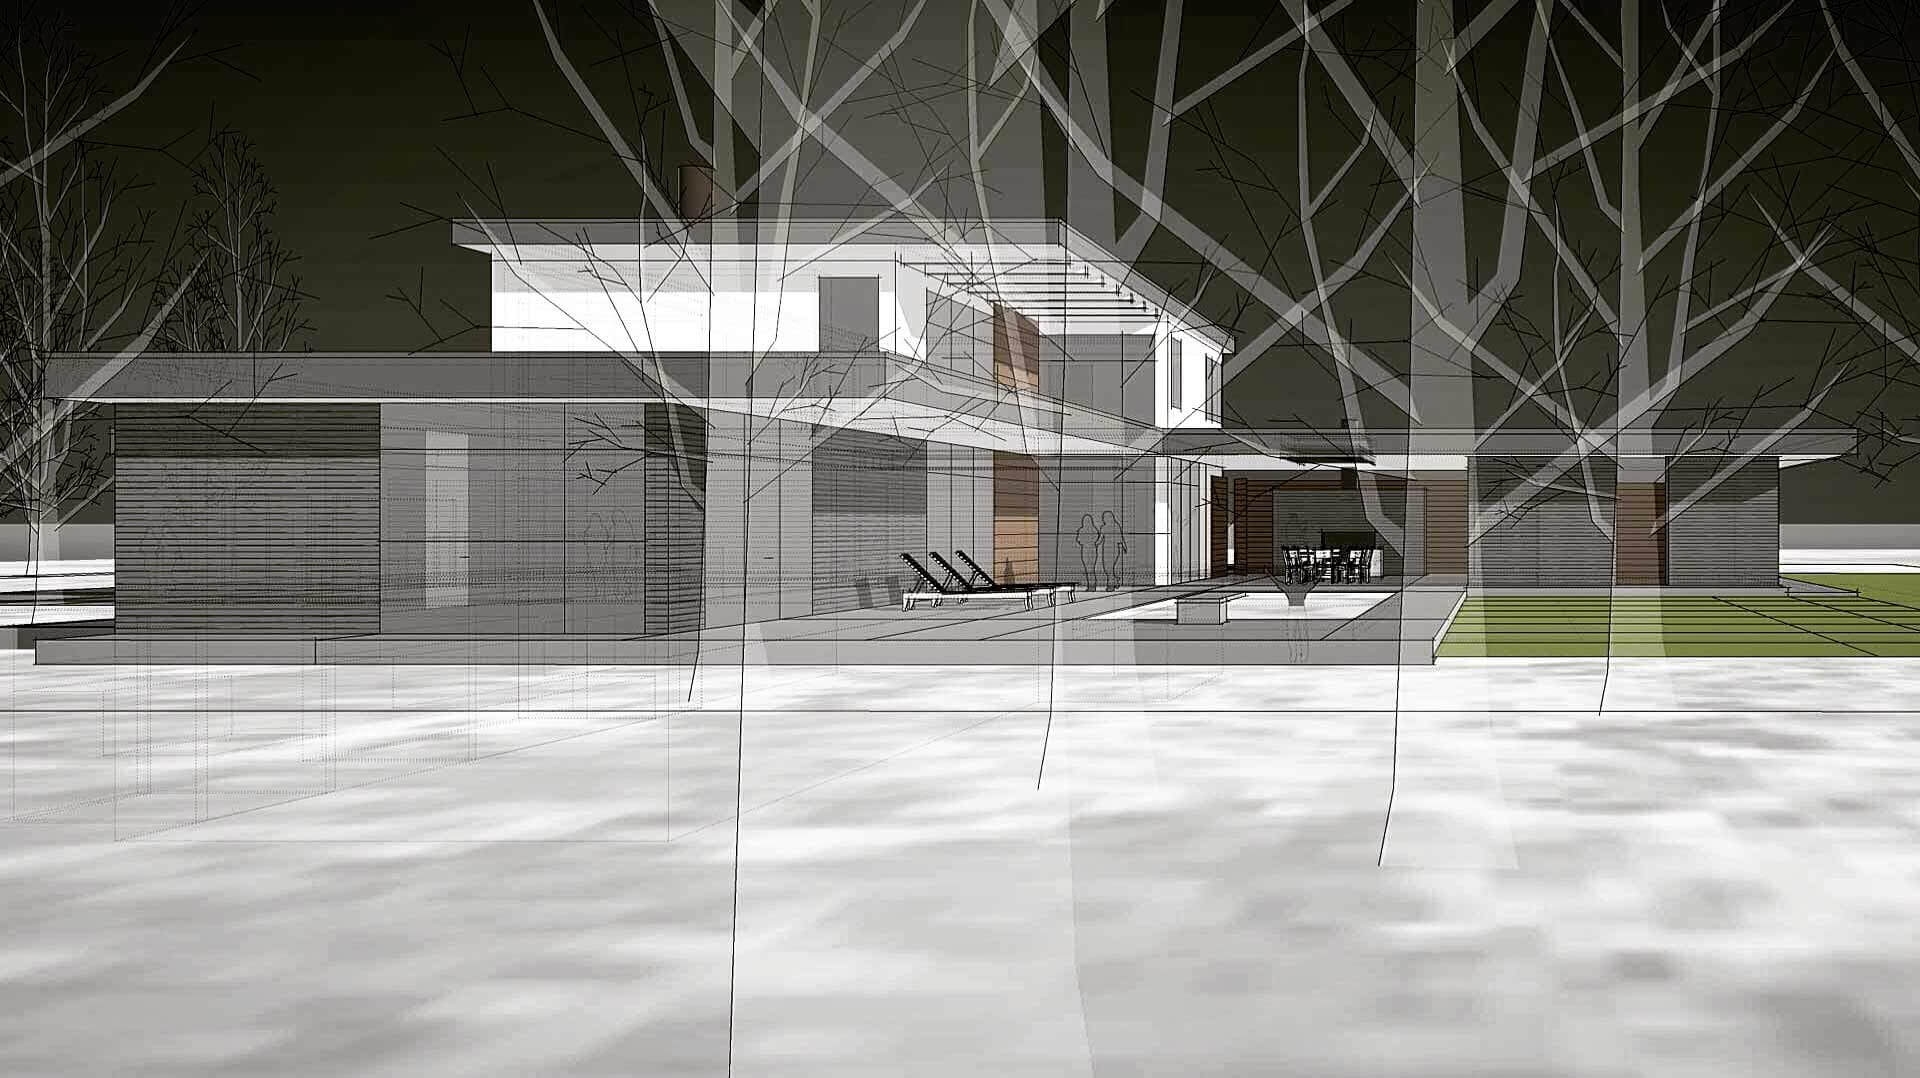 Paper Architecture (unbuilt 2015 midcentury modern inspired design) - North Crows Nest - Indianapolis, IN - HAUS | Architecture